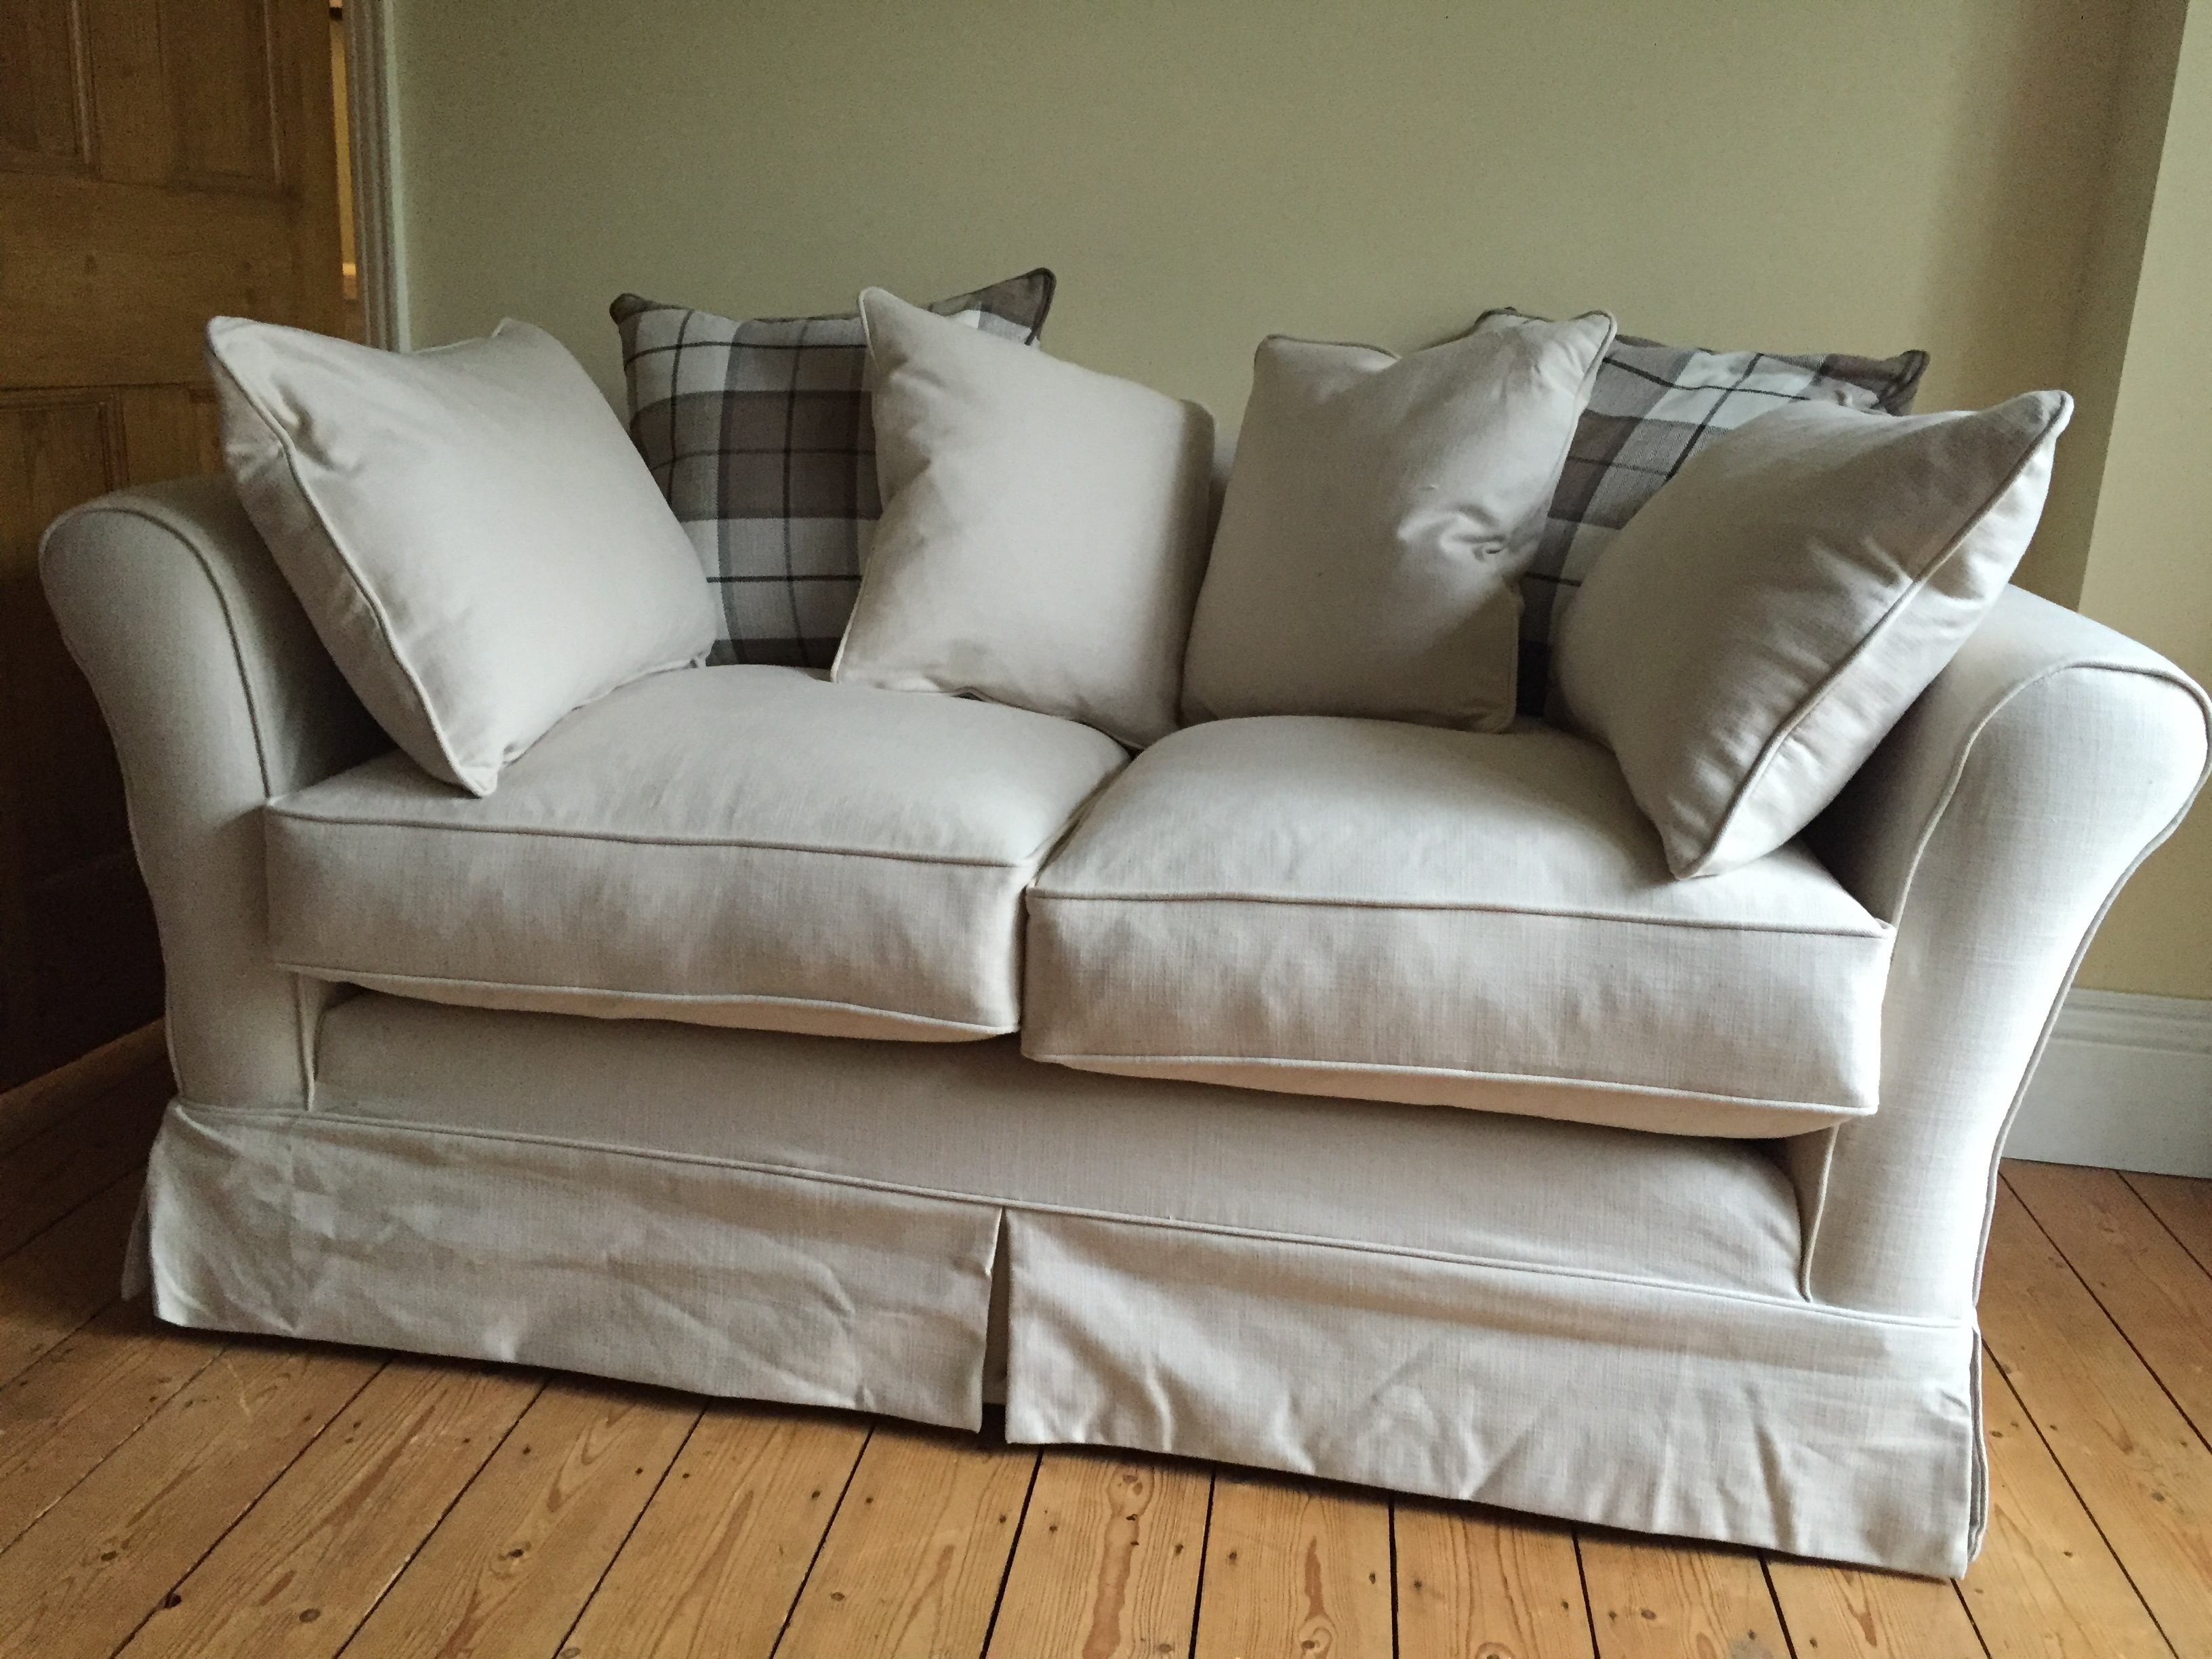 Sofas Center Modularofa With Washable Coversectional Within Sofas With Removable Covers (Image 12 of 15)